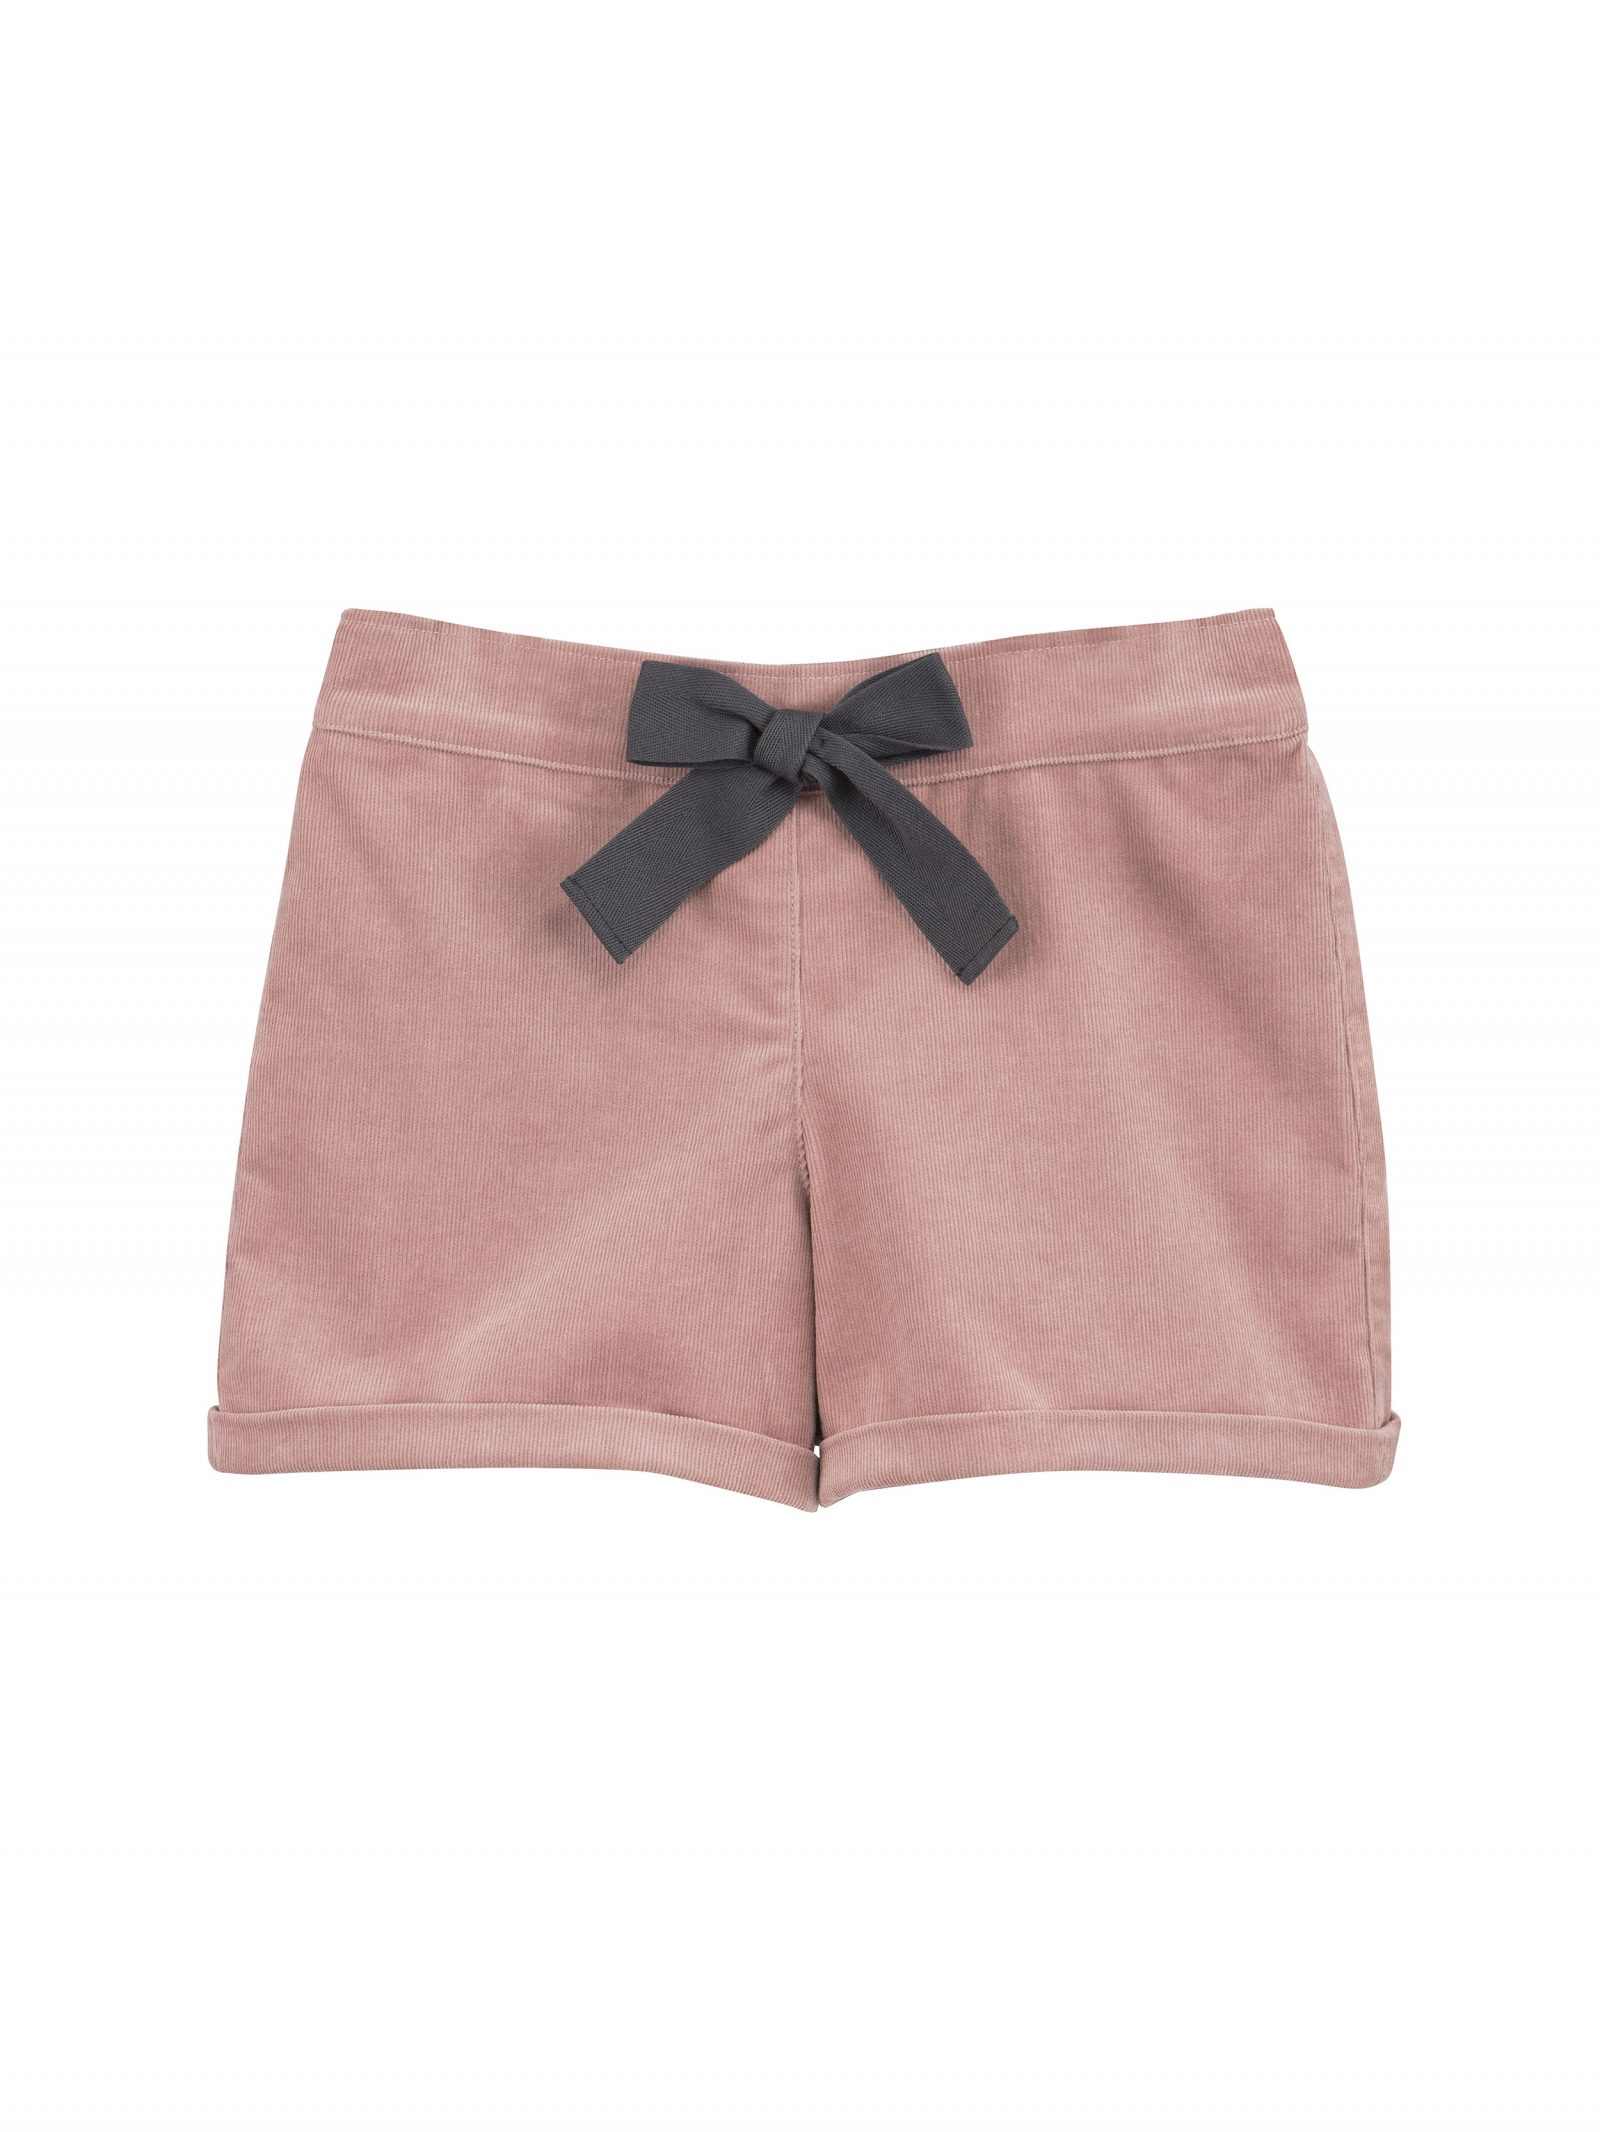 Charlotte Cord Shorts in Pink - Front